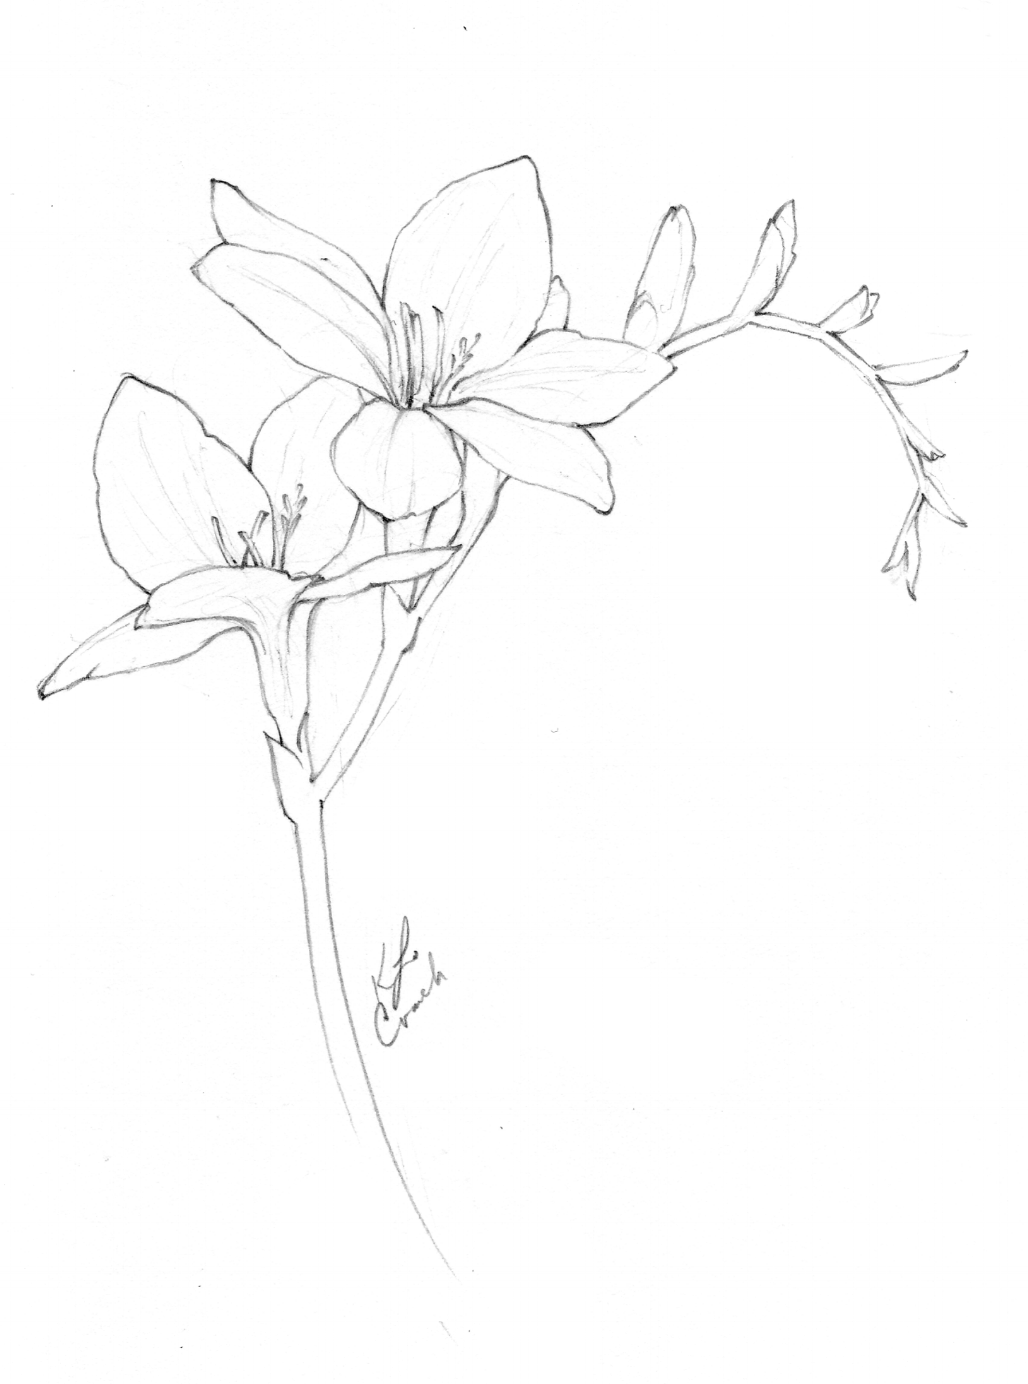 Flower drawings of freesia flowers by Katrina of Blushed Design.  This blog post reveals a collection of botanical illustrations and flower drawings from the annual inktober challenge. #inktober #flowerdrawings #botnaicalillustrations #blushedbotanicals www.blusheddesign.com